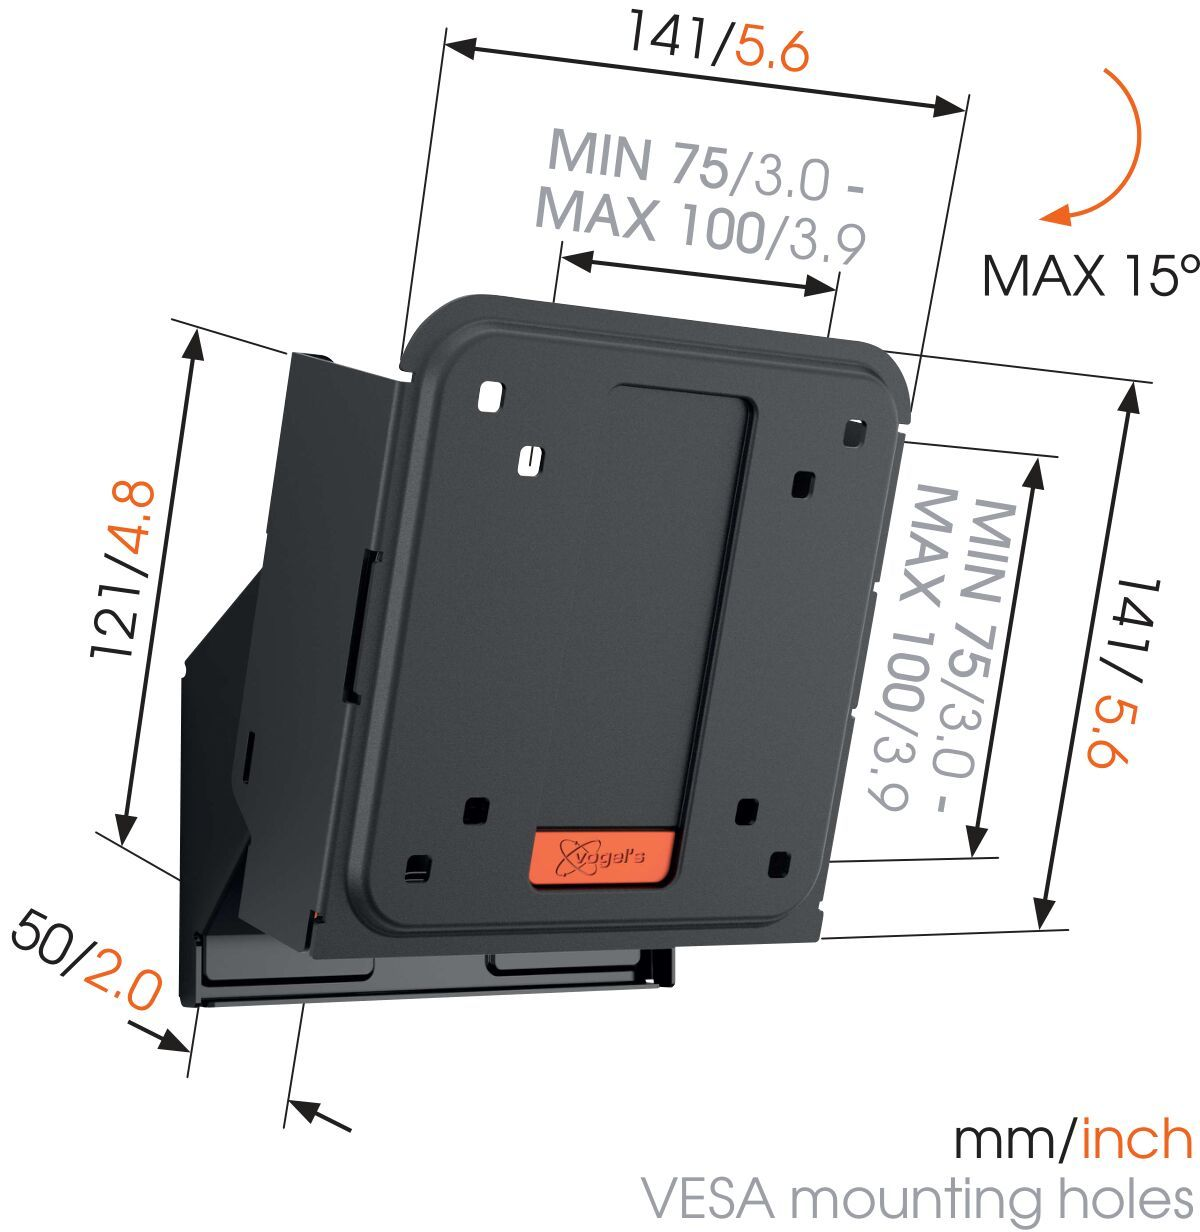 Vogel's WALL 2015 Tilting TV Wall Mount - Suitable for 17 up to 26 inch TVs up to kg - Tilt up to 15° - Dimensions